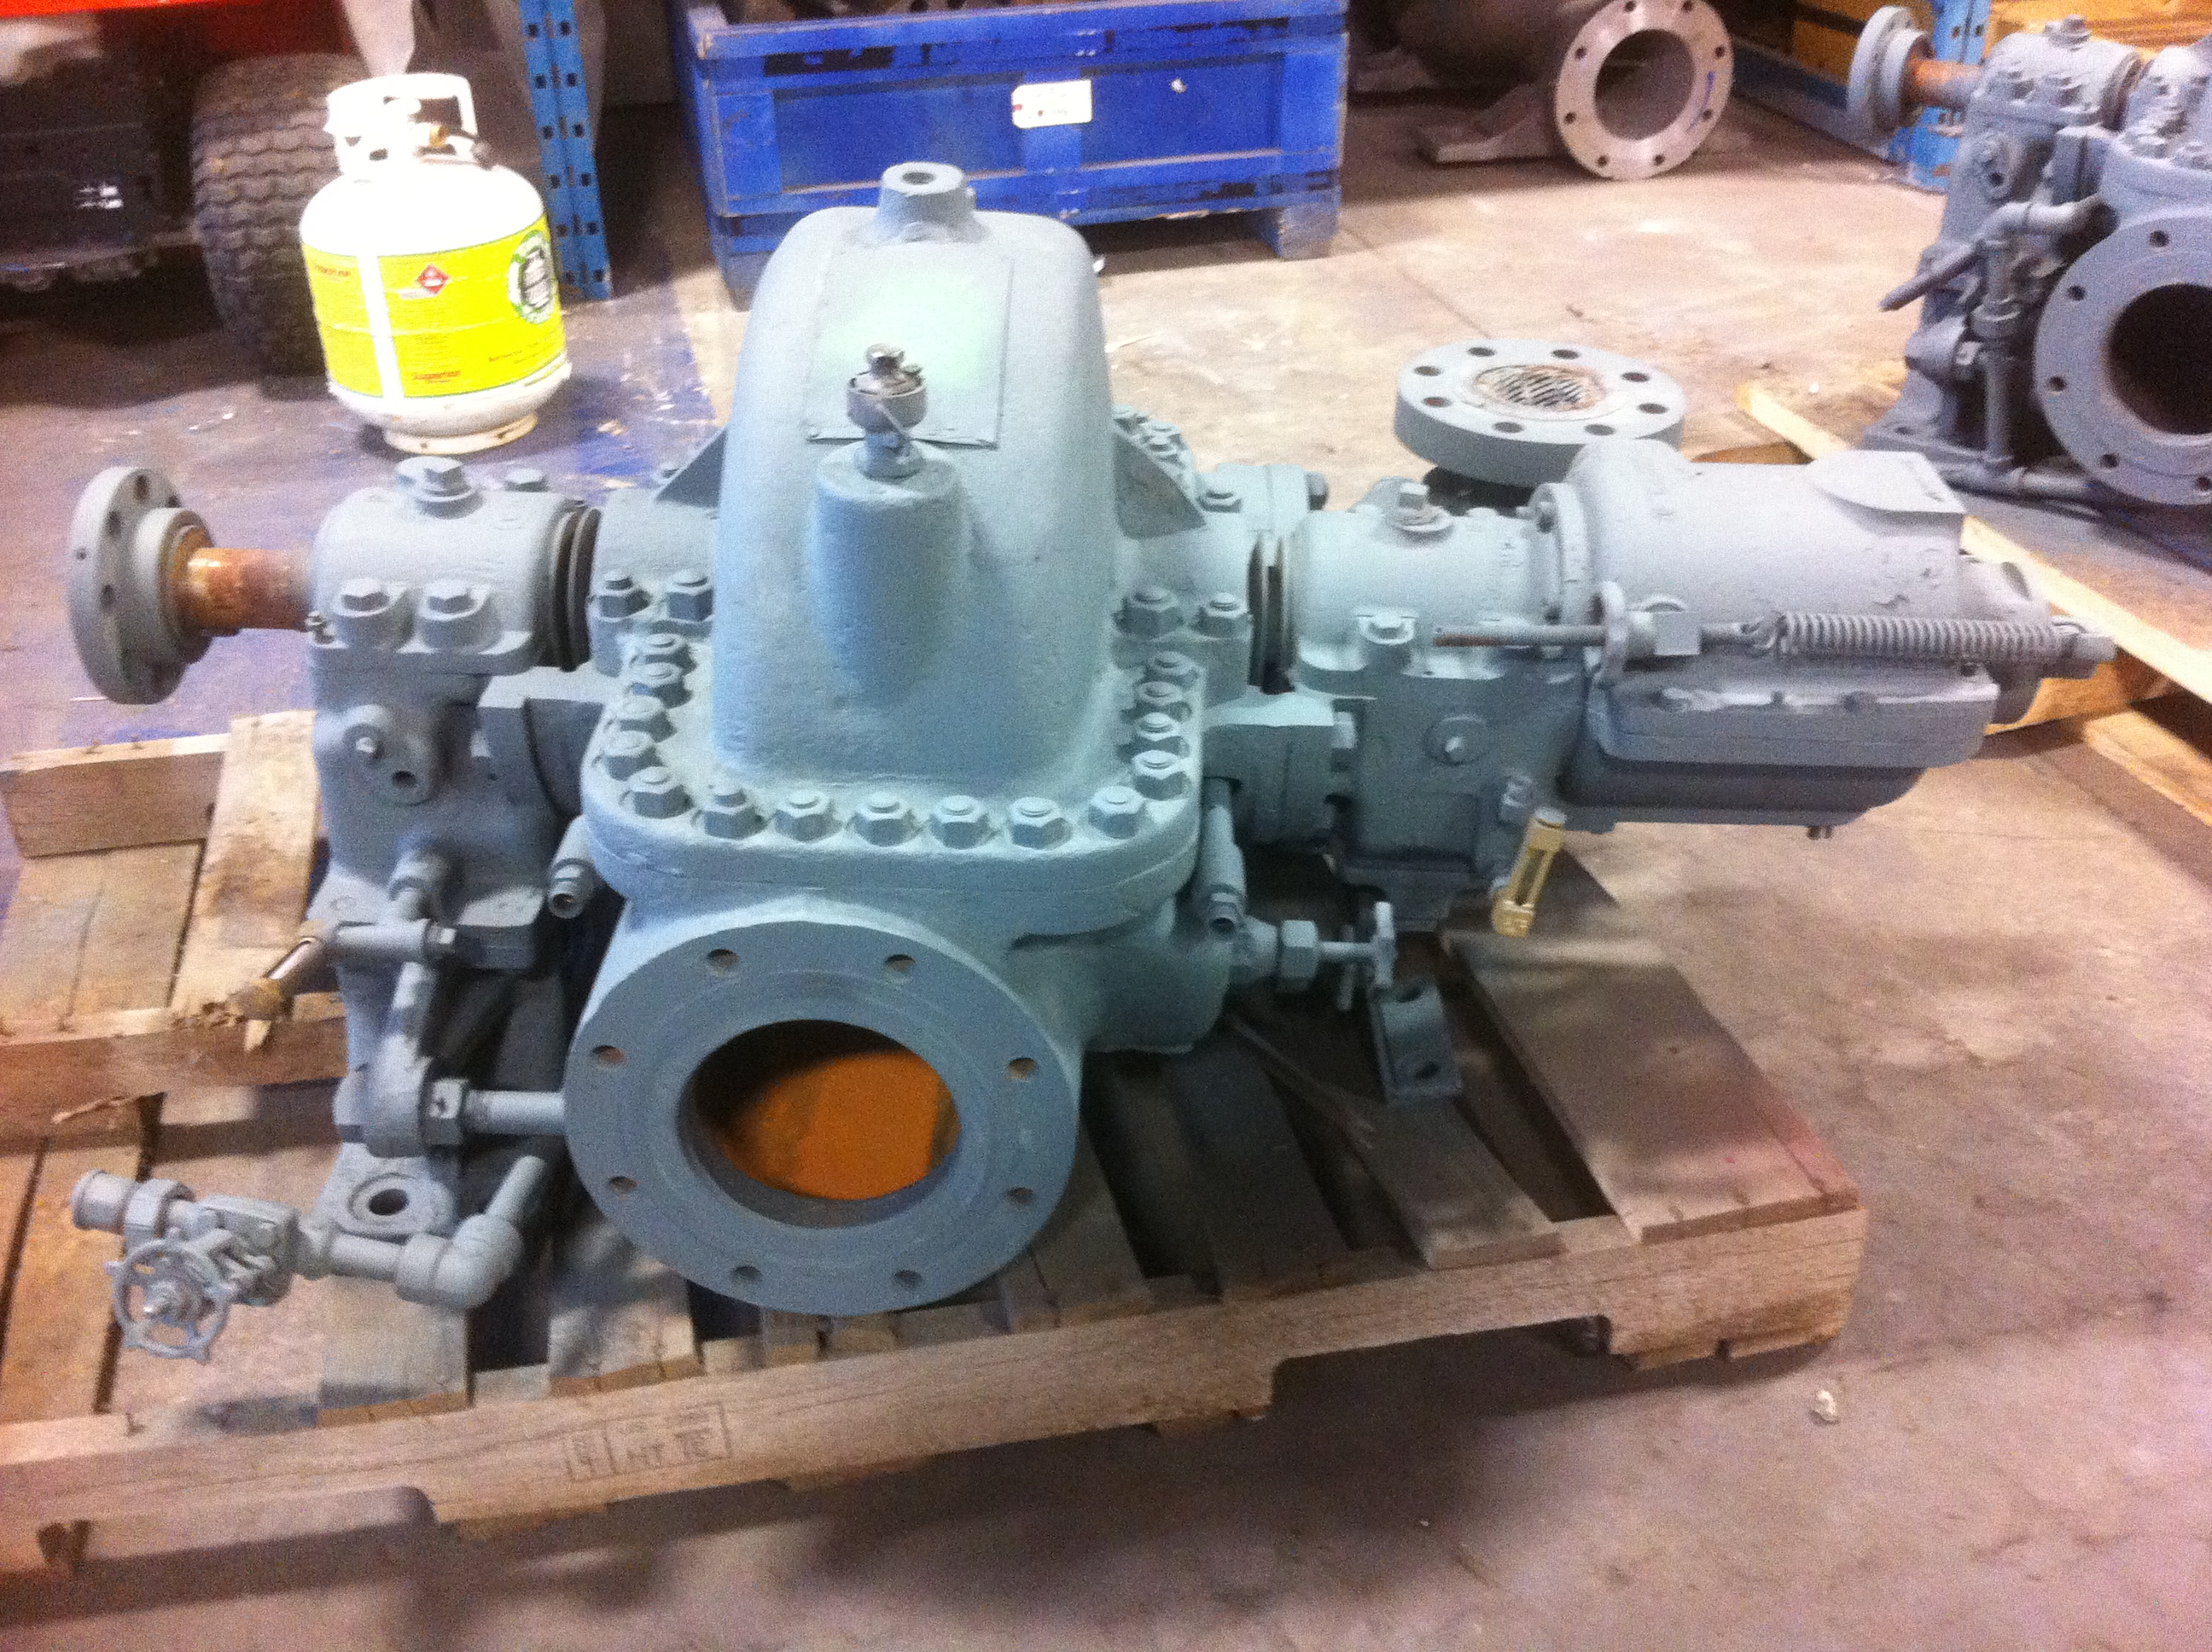 Worthington U2R Steam Turbines